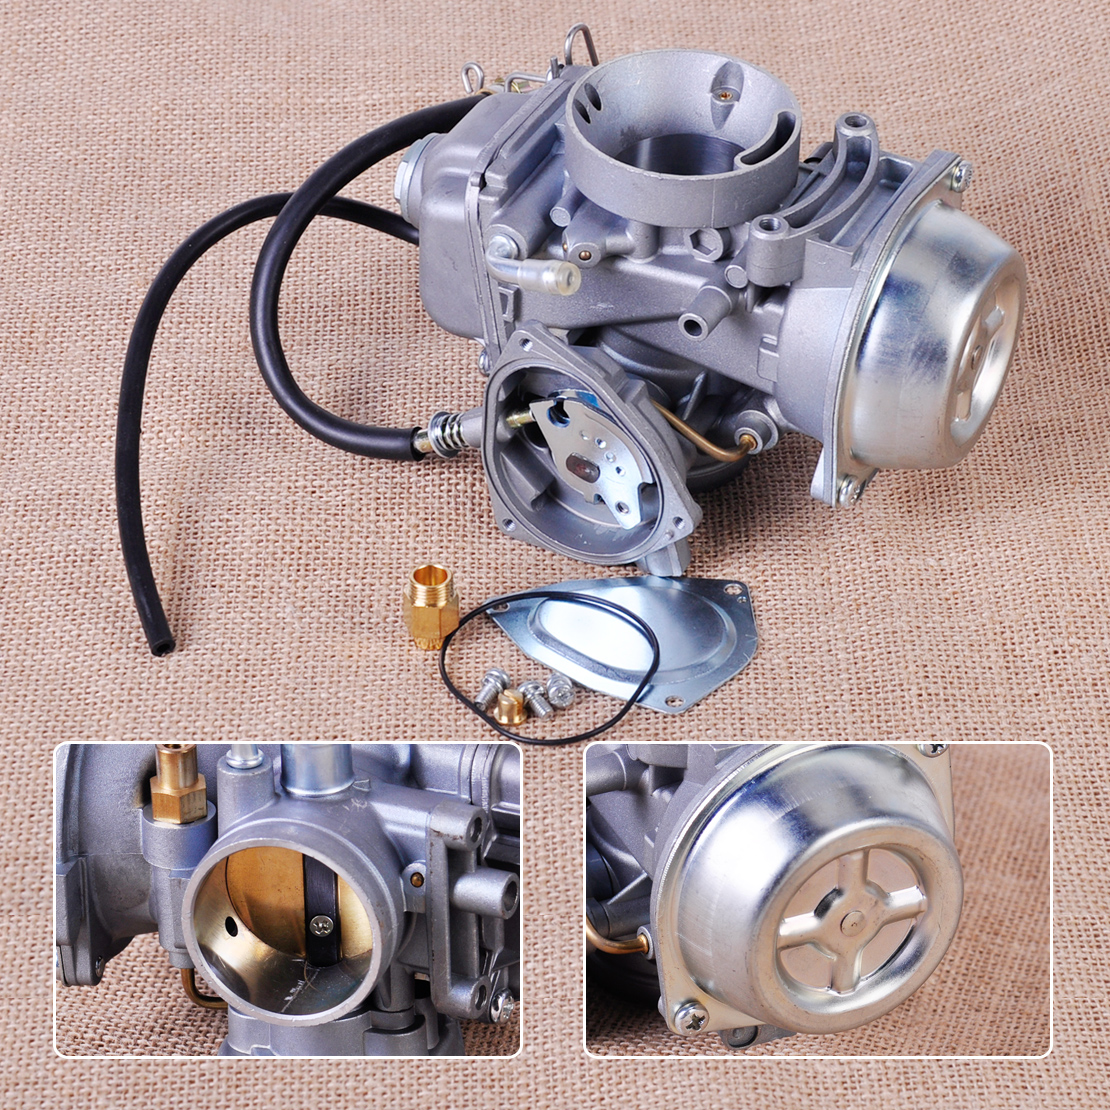 Citall carburetor carb assembly fit for polaris sportsman 500 4x4 ho ar1368ca161ra 3131453 3131567 3131707 3131712